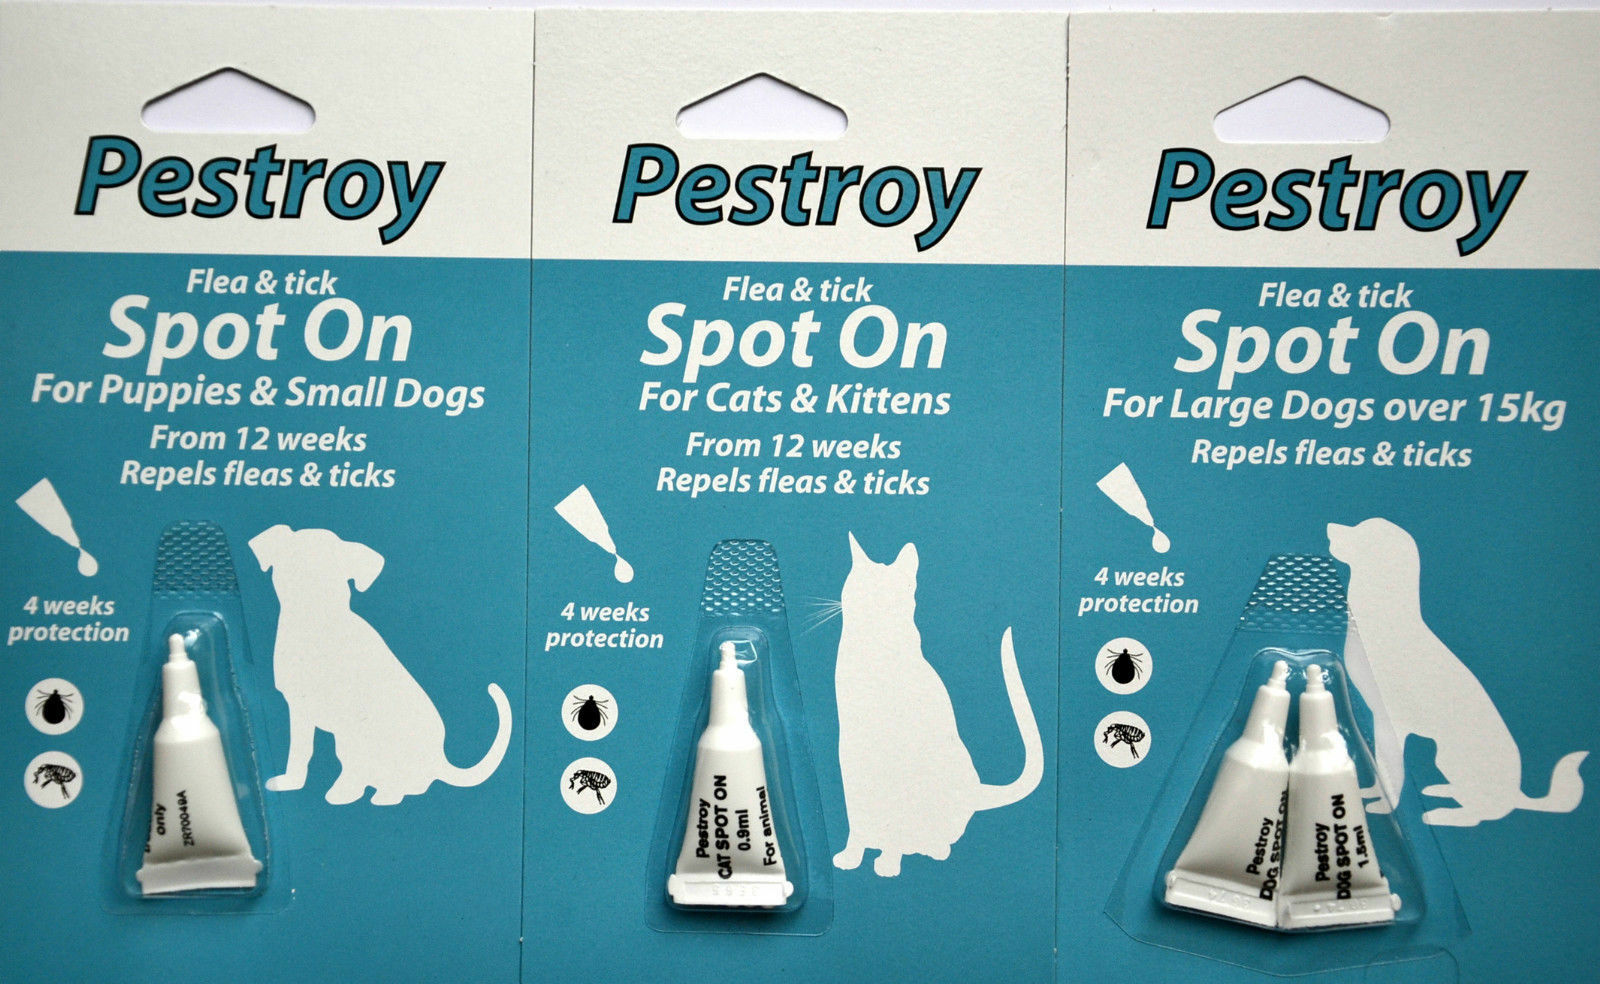 Pestroy Flea & Tick Spot On For Cats & Kittens Large And Small Dogs